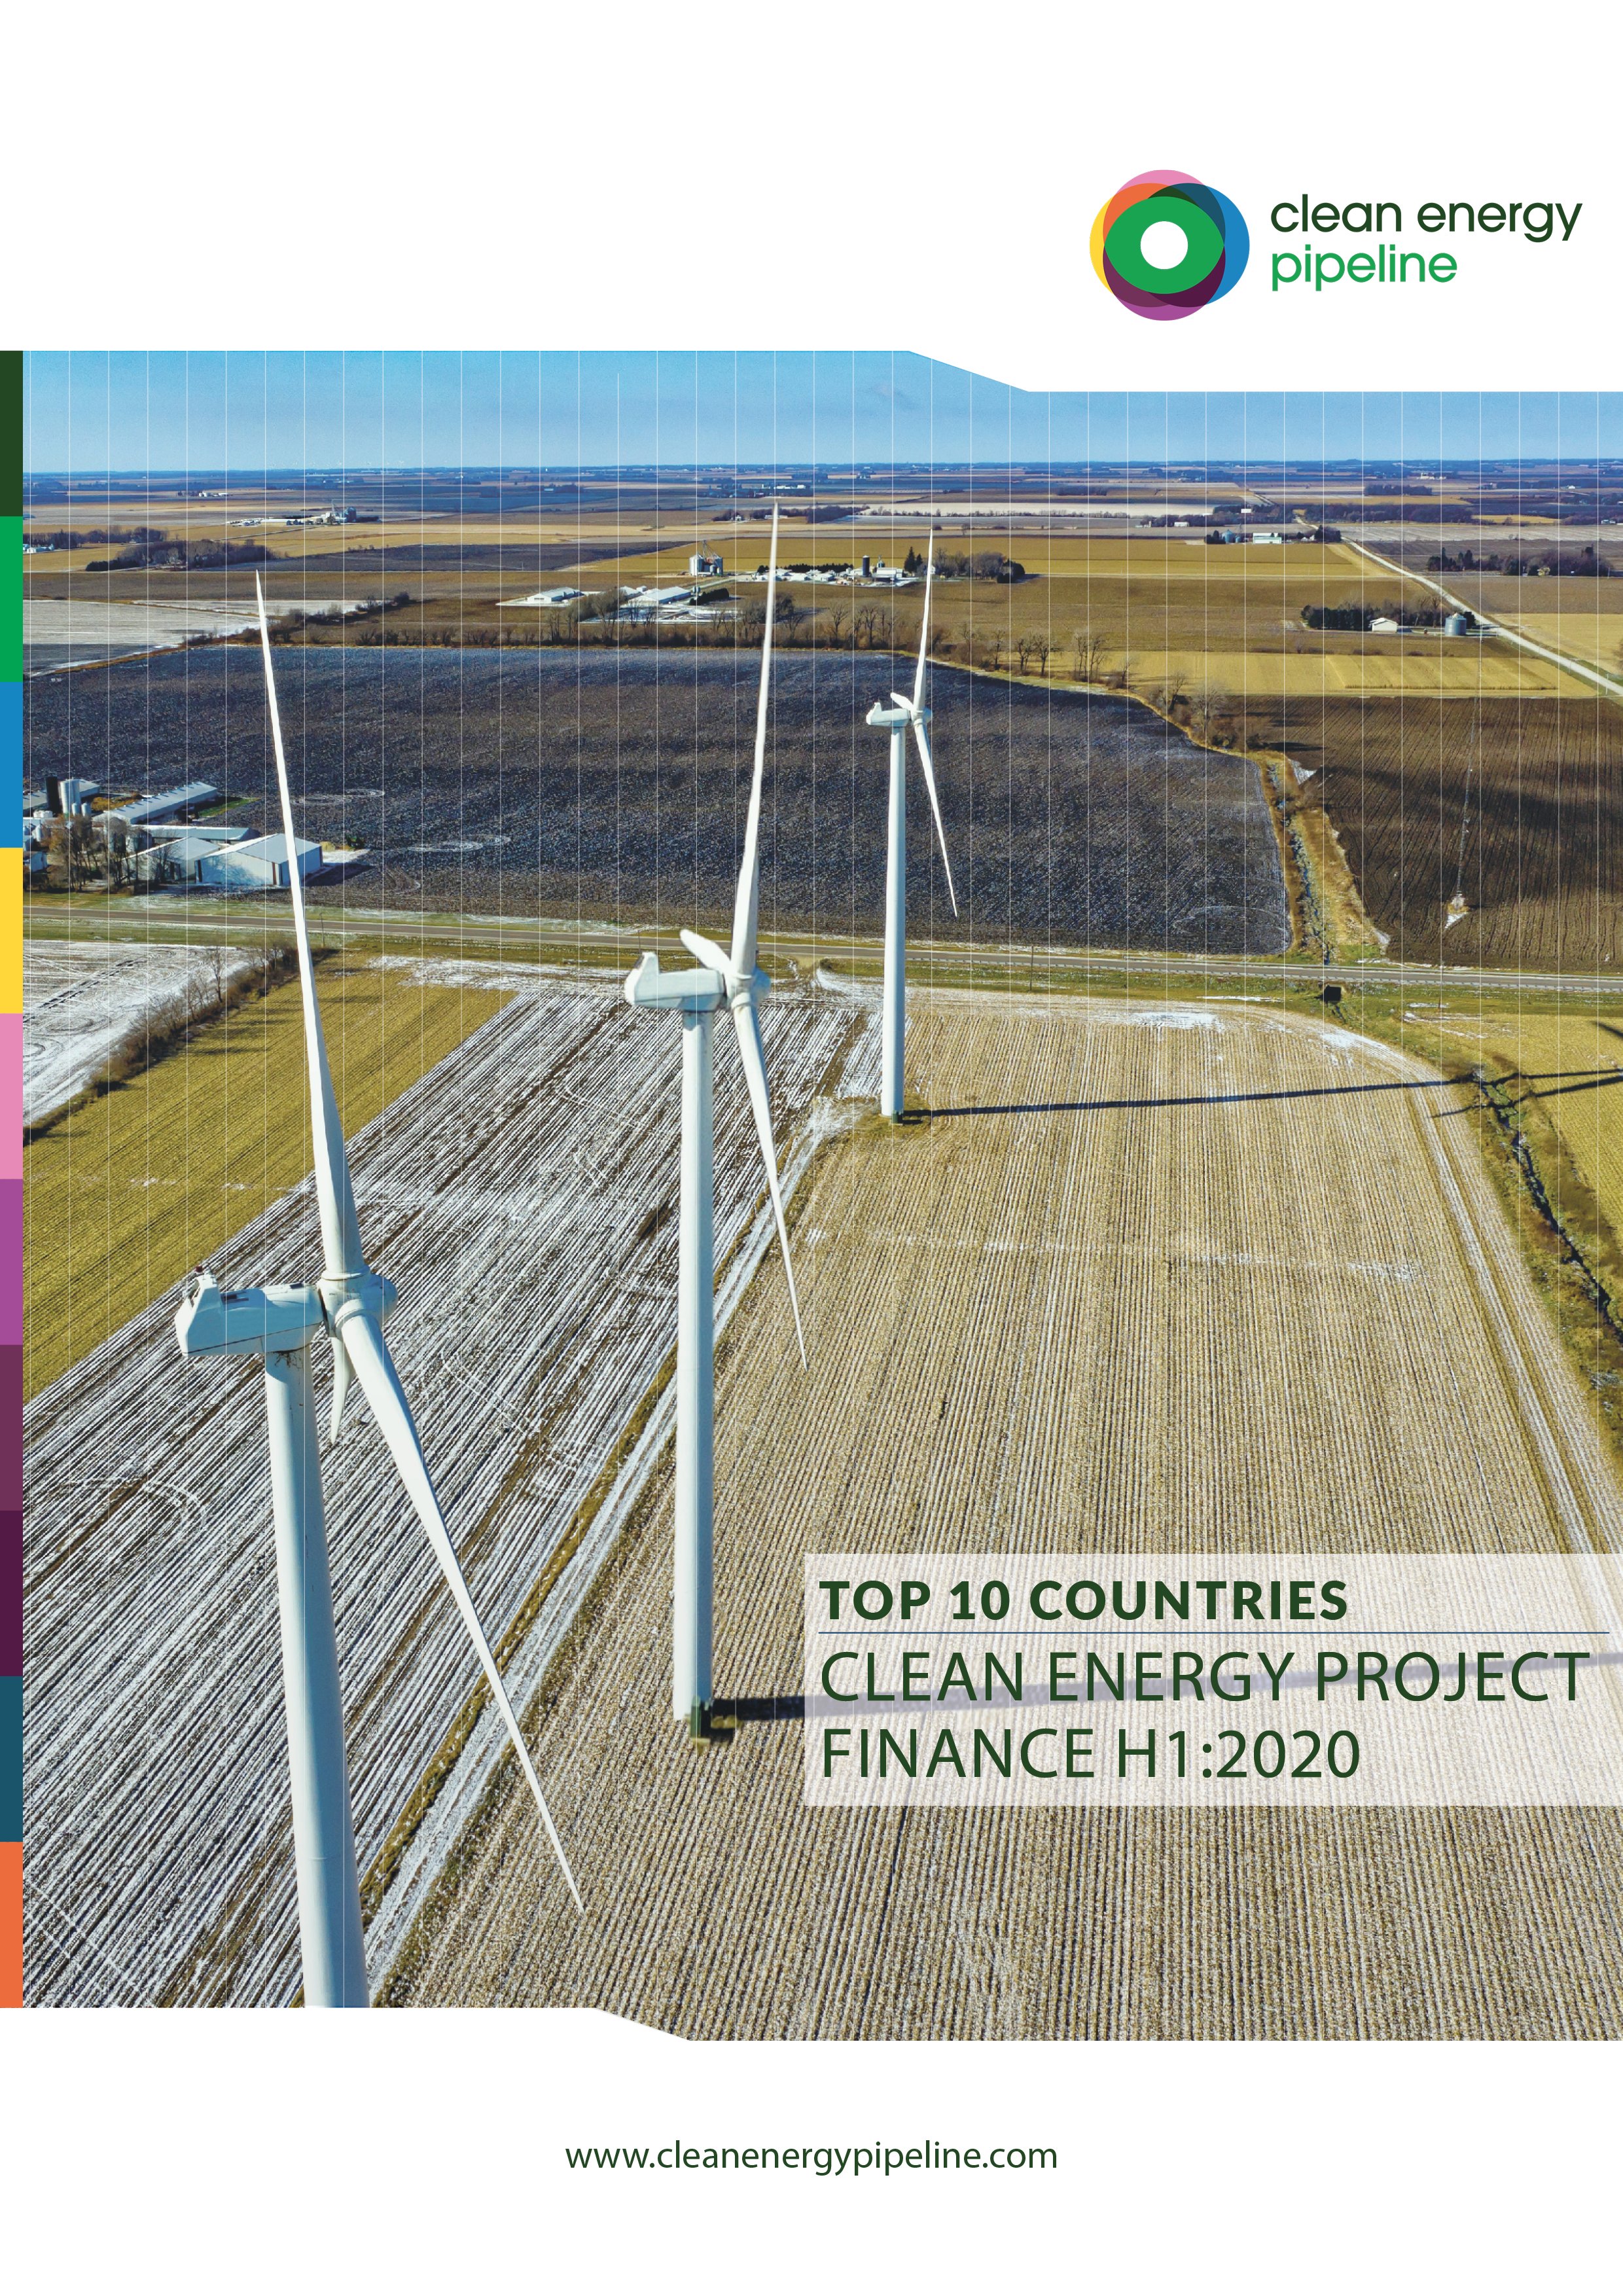 Market report cover image: Top Ten Countries for Clean Energy Project Finance in H1 2020